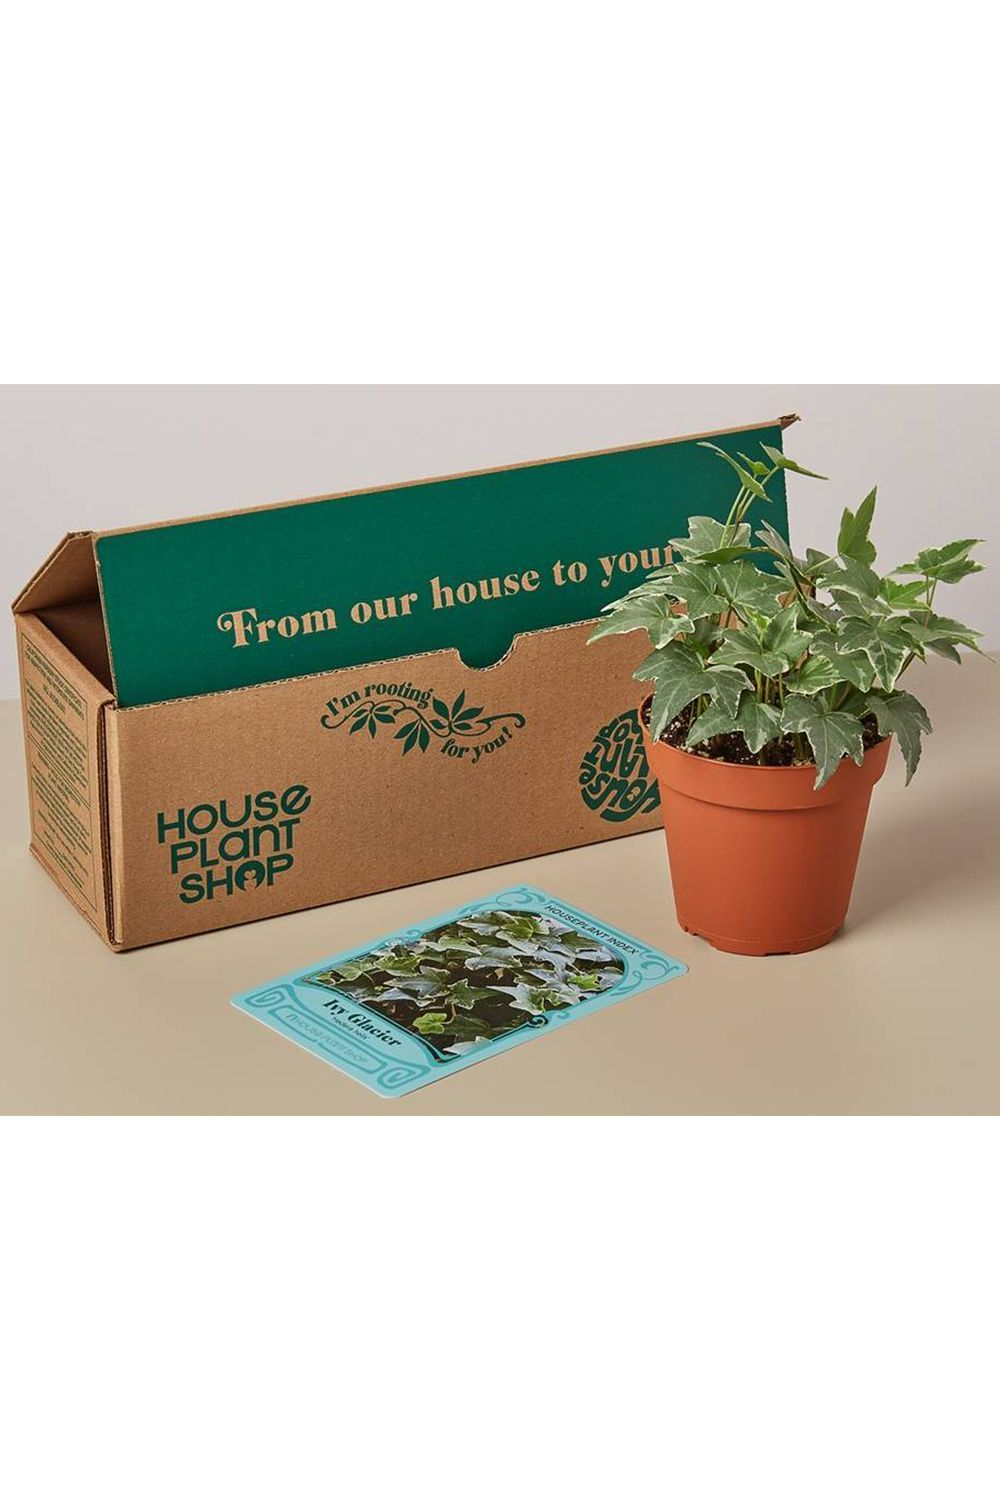 40 Best Gifts For Plant Lovers Cute Plant Gift Ideas 2020